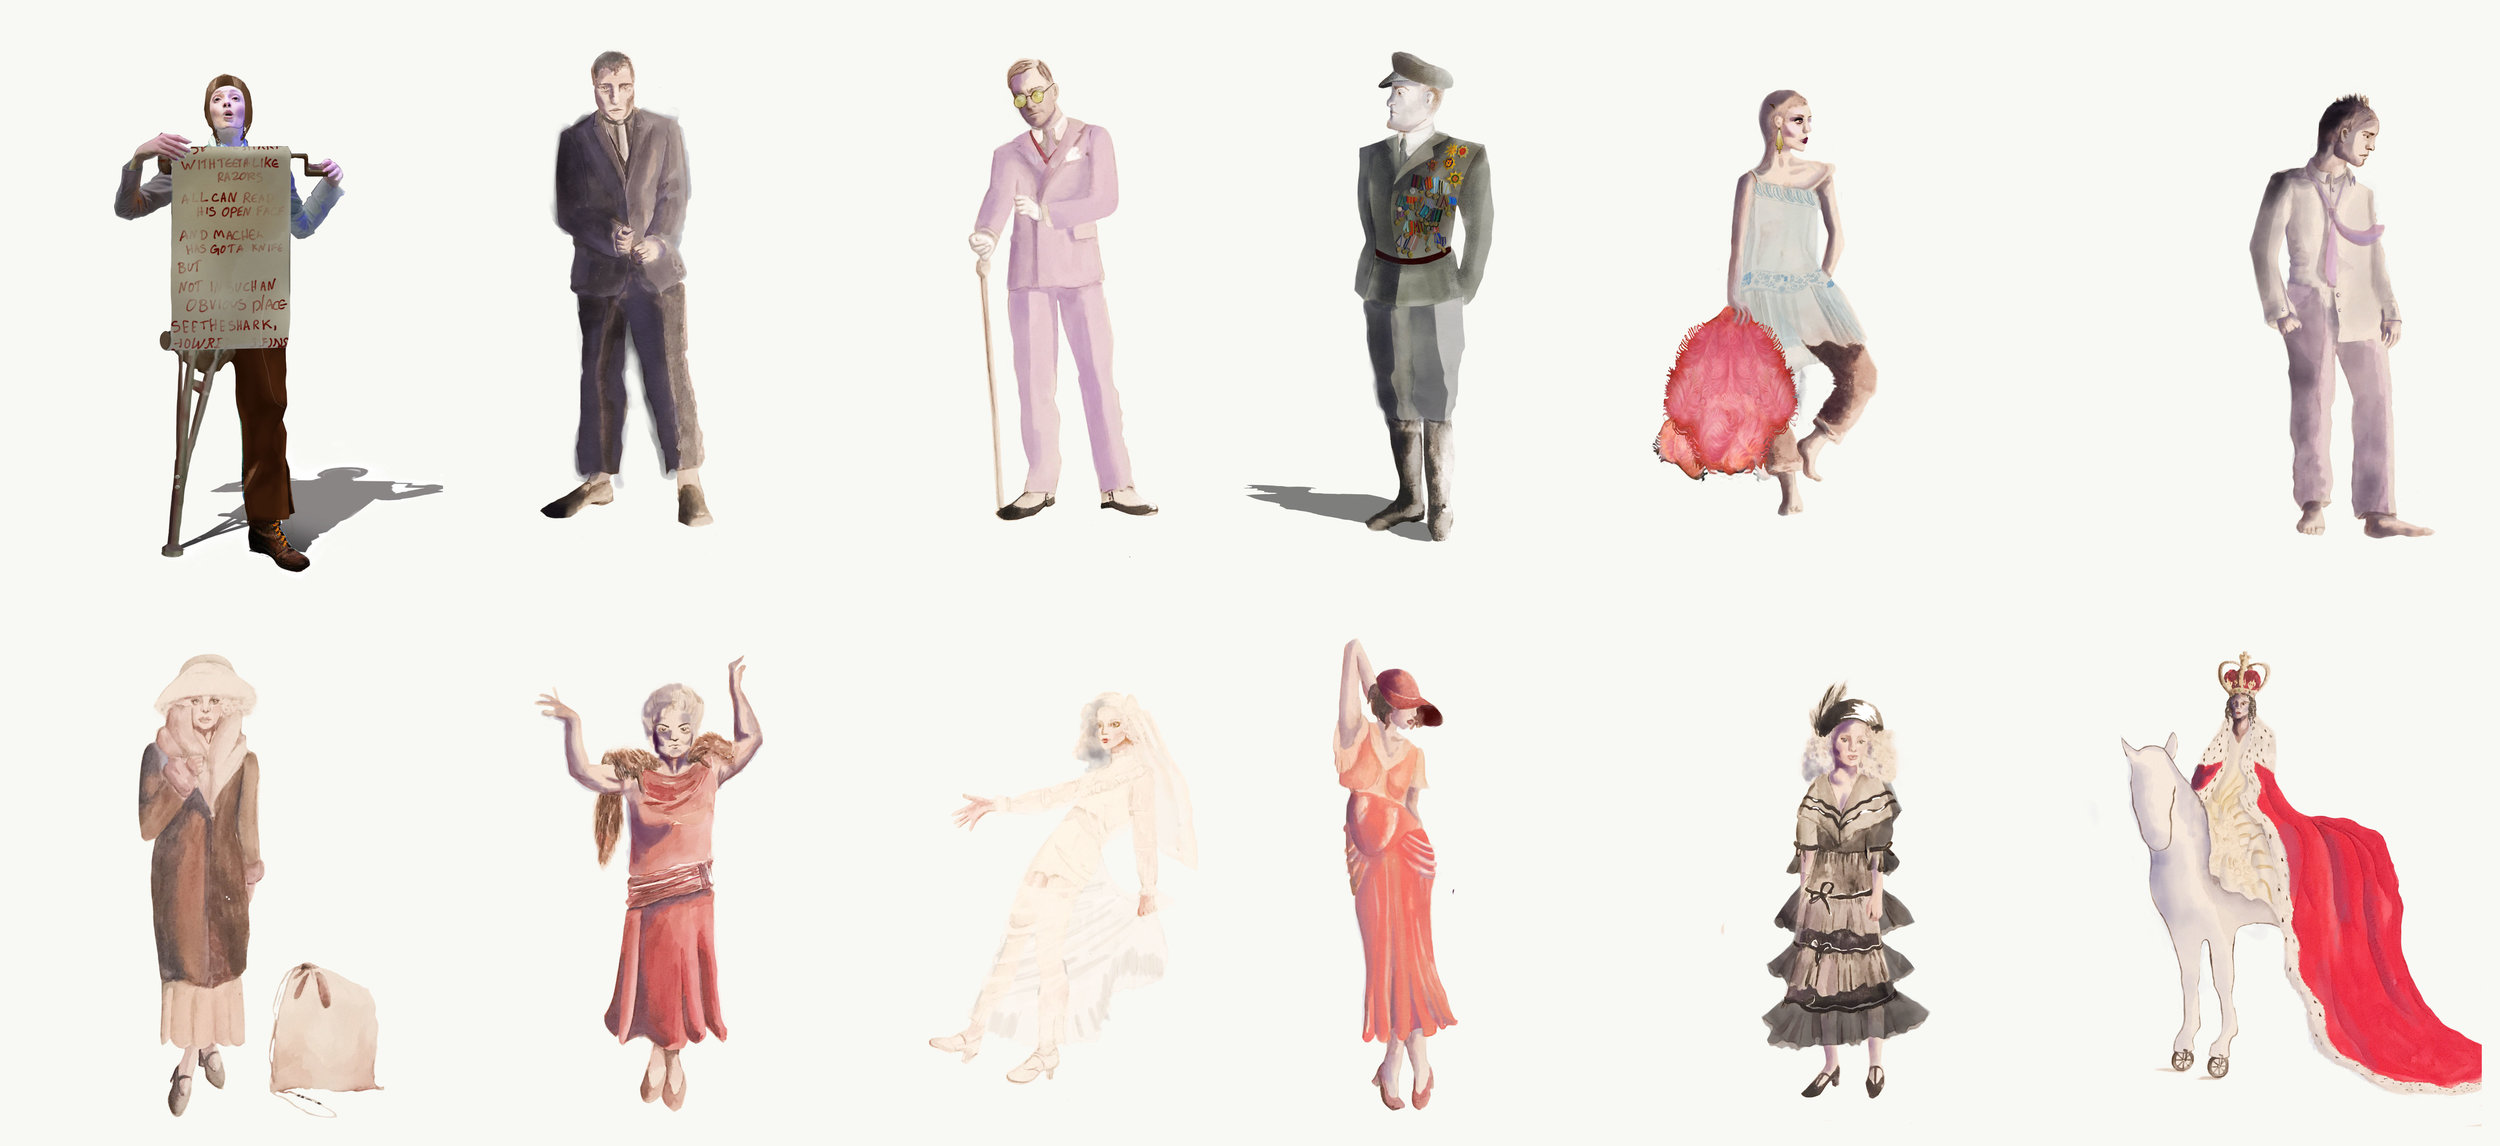 Top Row: Ballad Singer, Mr. Peachum, Macheath, Tiger Brown, Low-Dive Jenny, Mac (at his lowest) Bottom Row: Polly (running away from home), Mrs. Peachum, Polly (Wedding), Lucy, Polly (For Mac's Impending Funeral), Deus Ex Machina